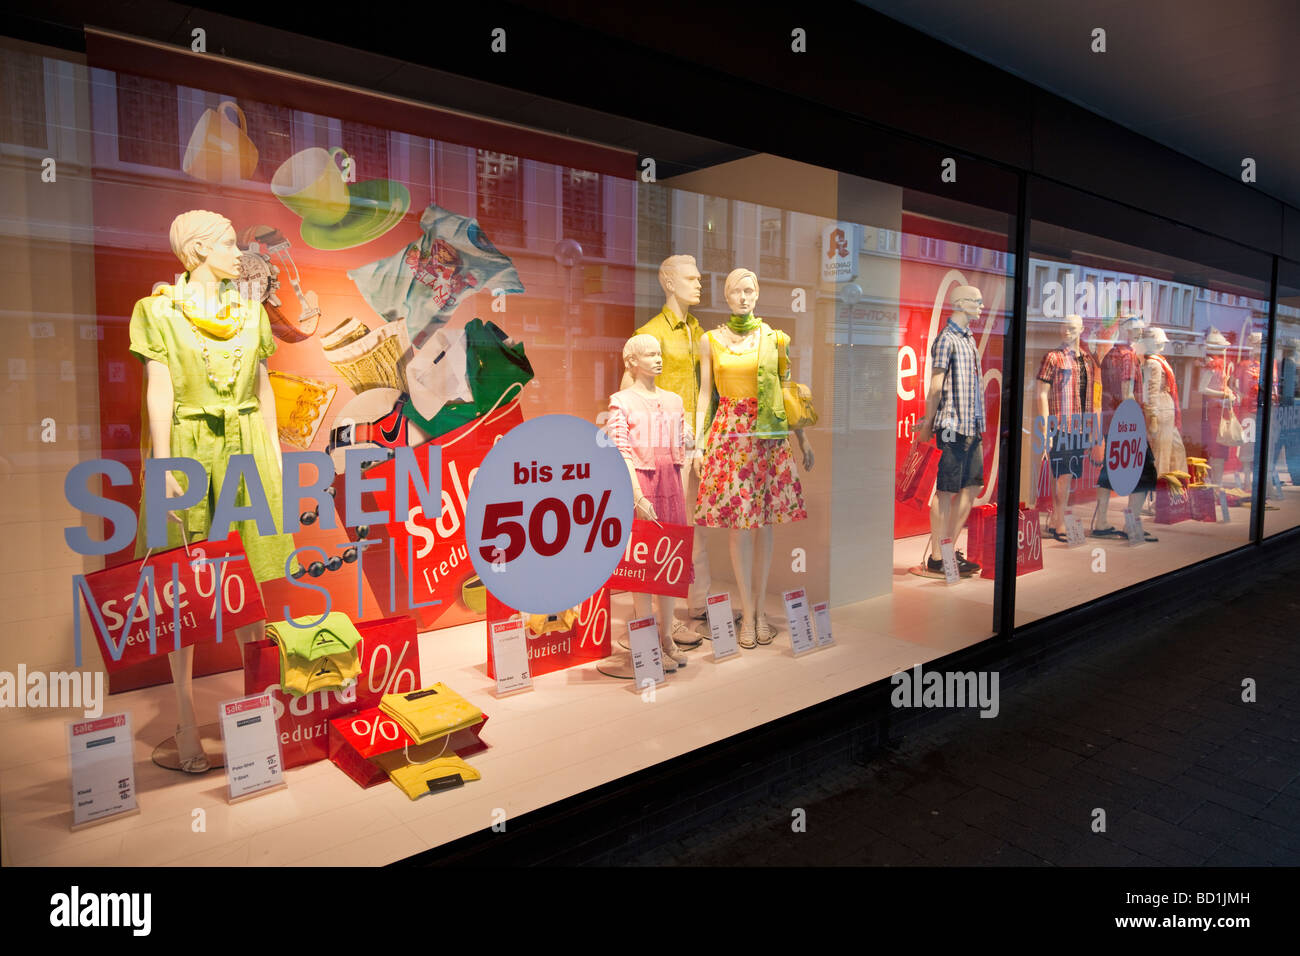 Department store window display with sale items in Germany, Europe - Stock Image